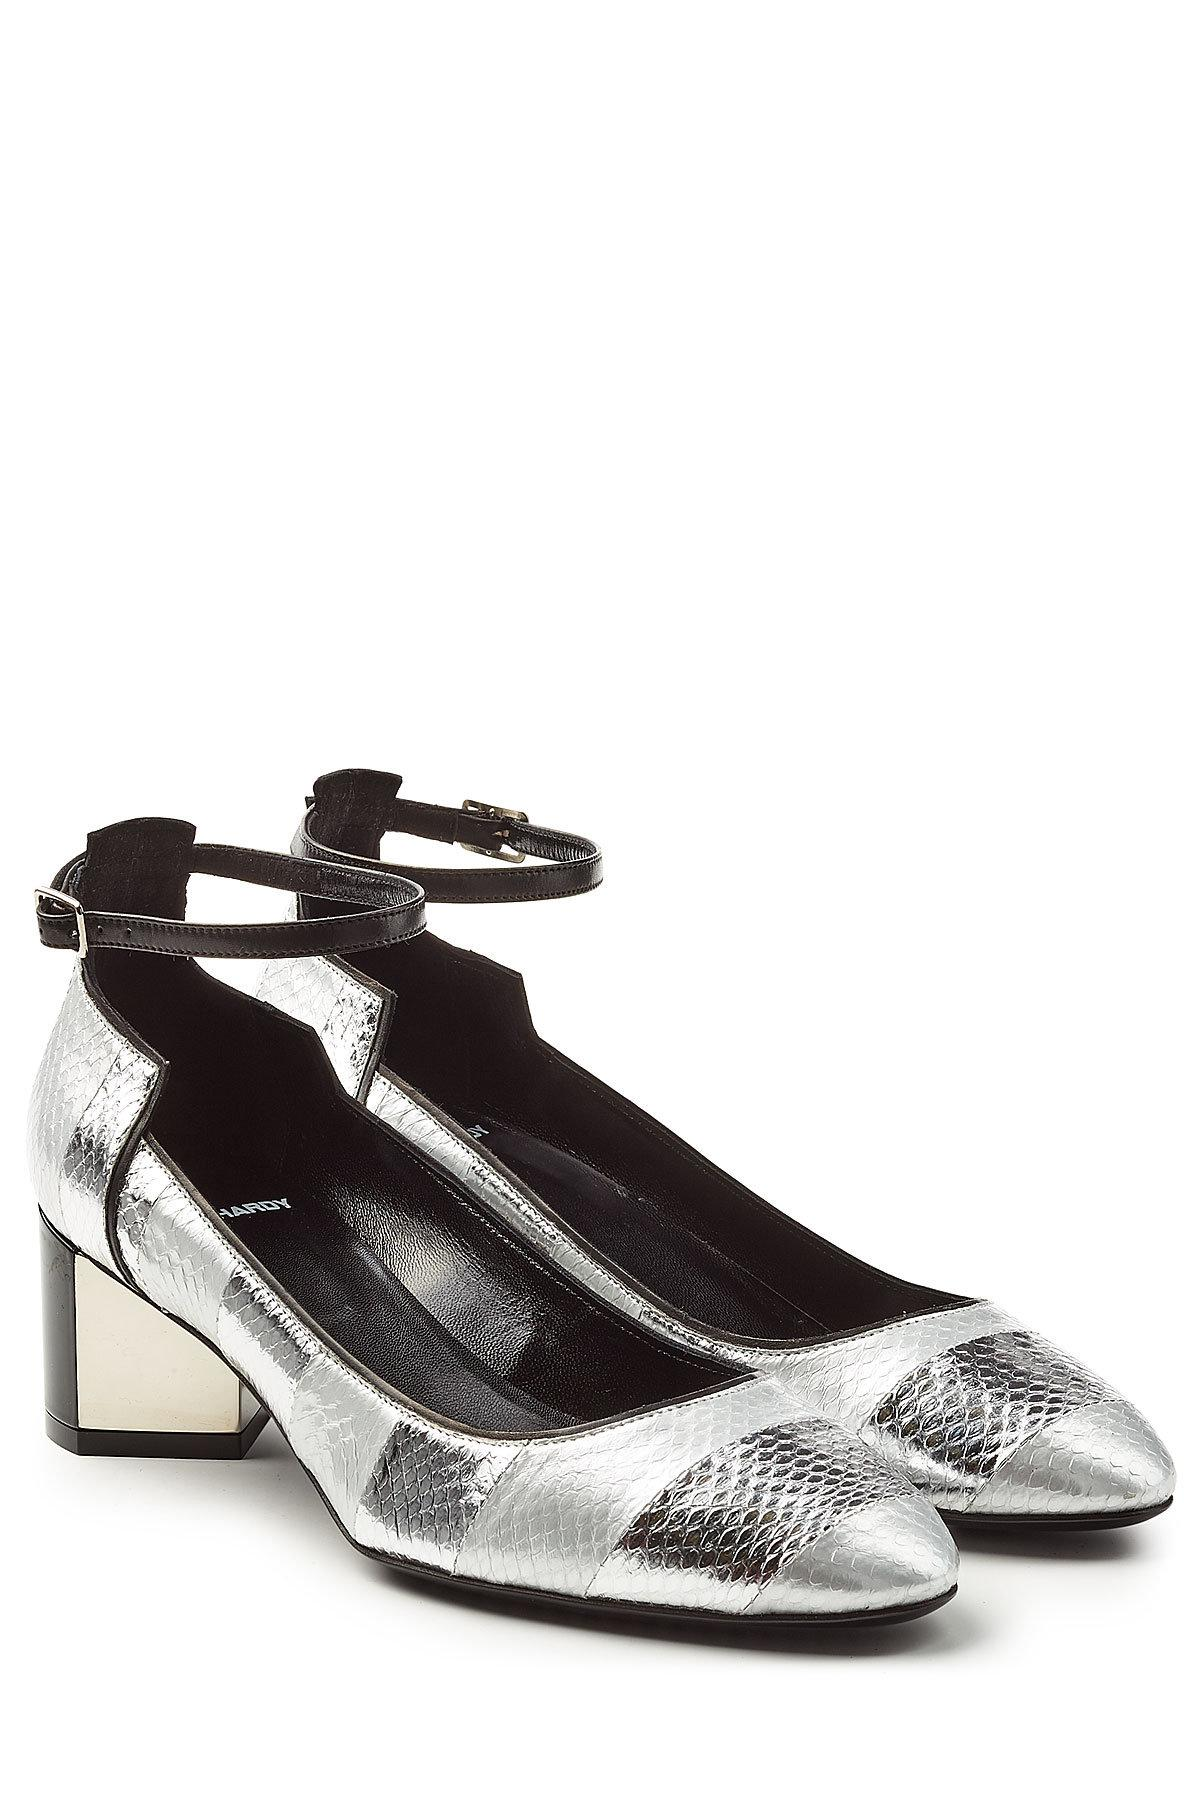 ec819477799 Lyst - Pierre Hardy Leather And Snakeskin Mary-janes